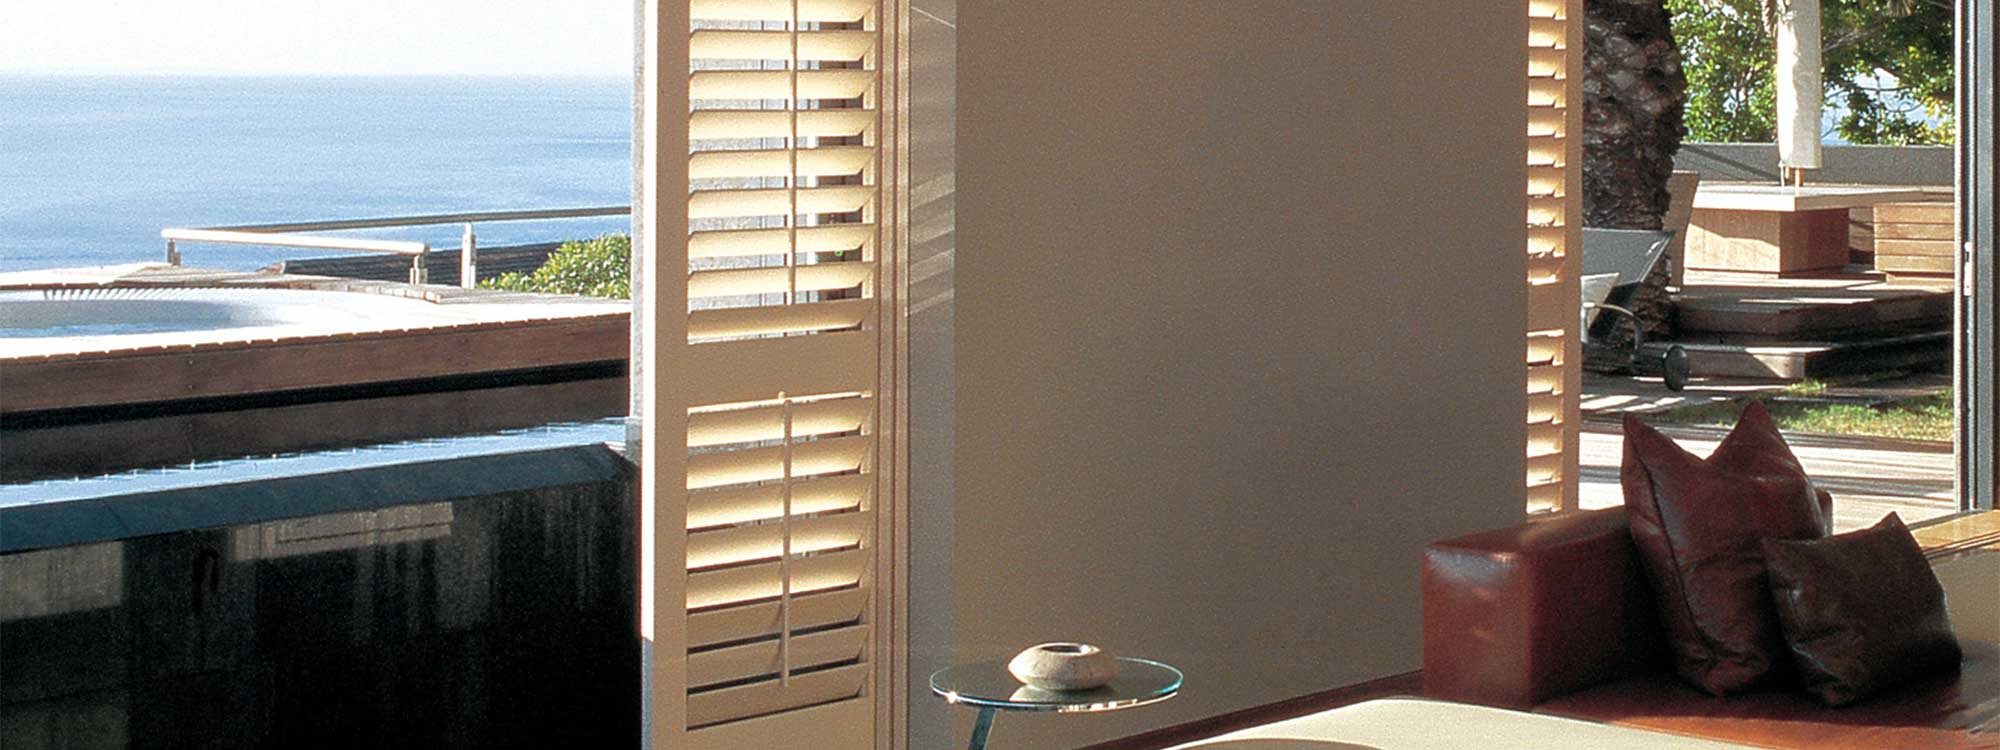 Normandy-shutters-living-area-view